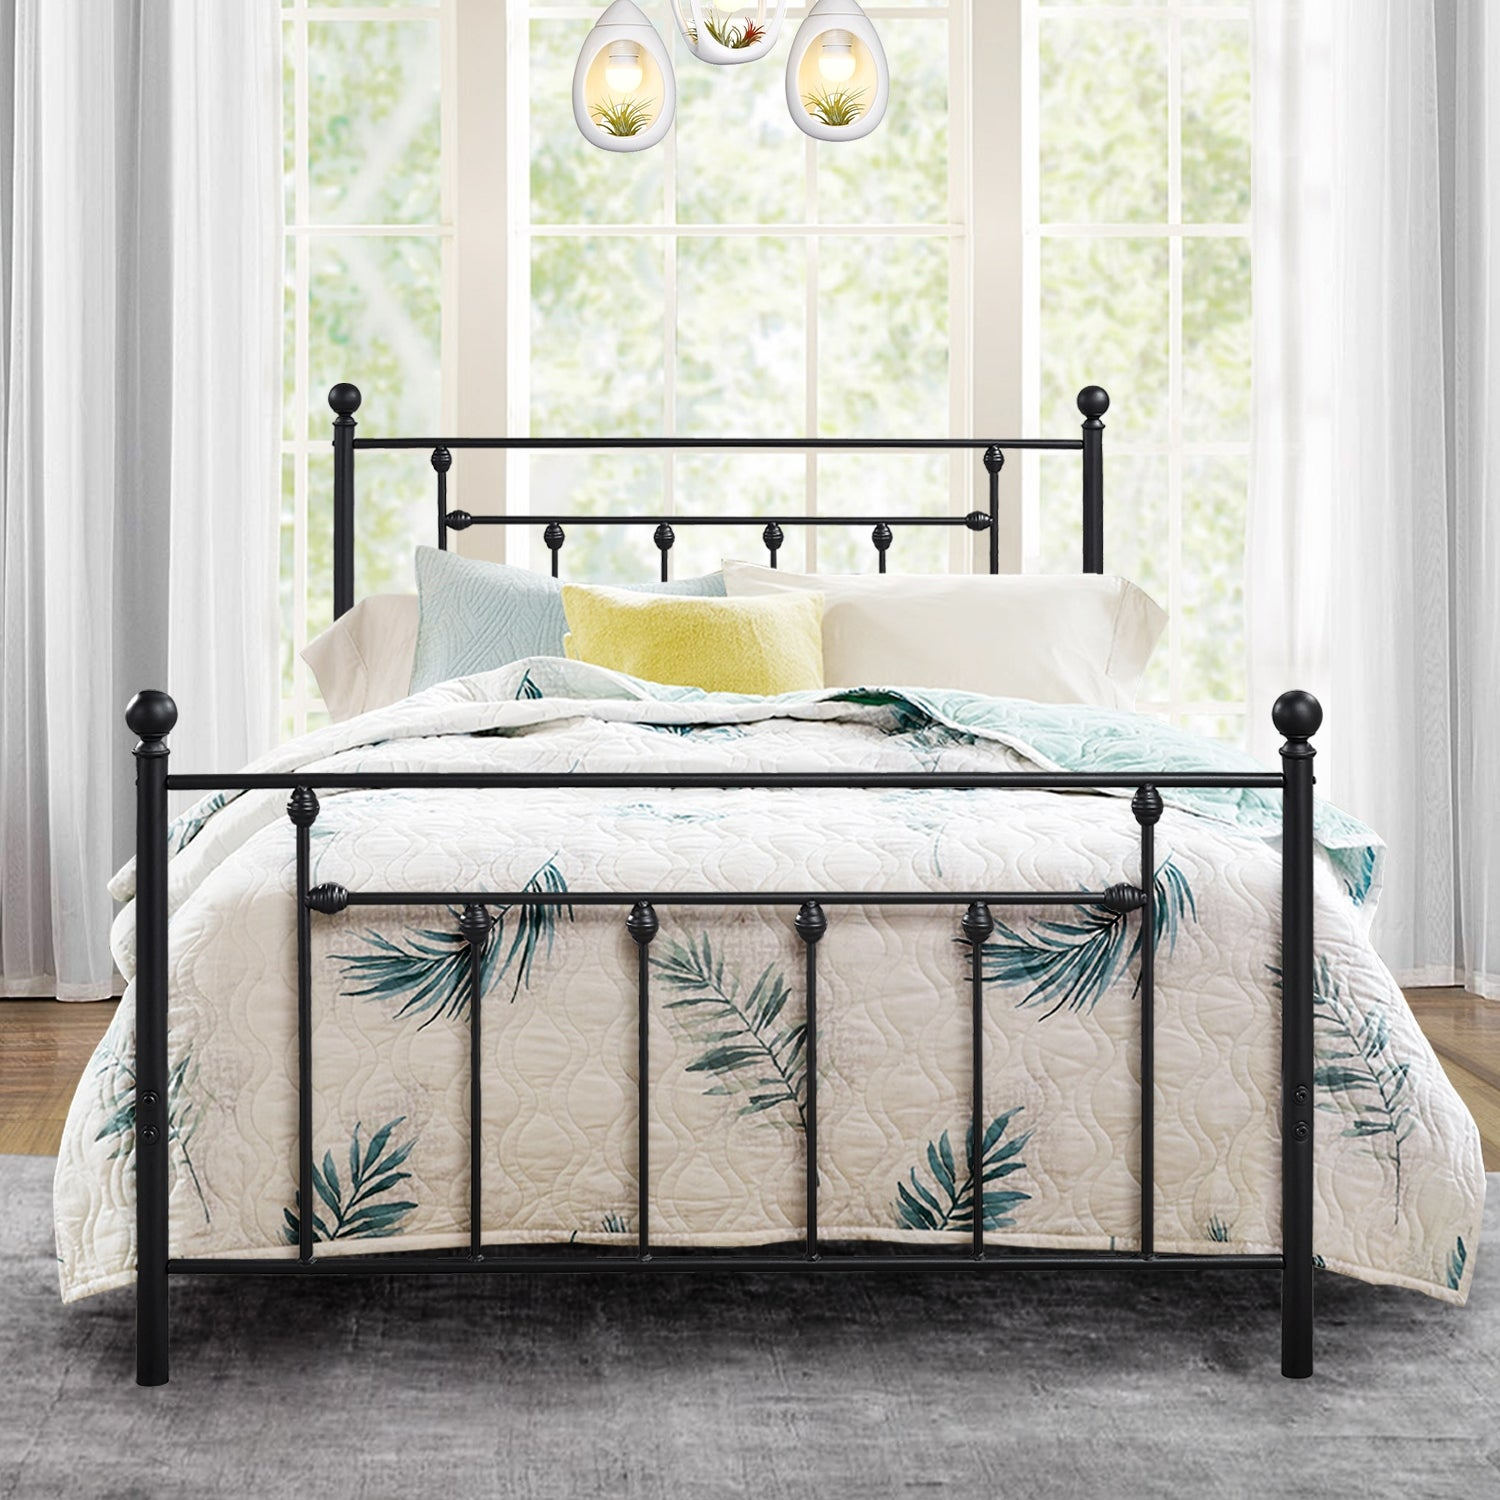 Buy Modern Contemporary Beds Online At Overstock Our